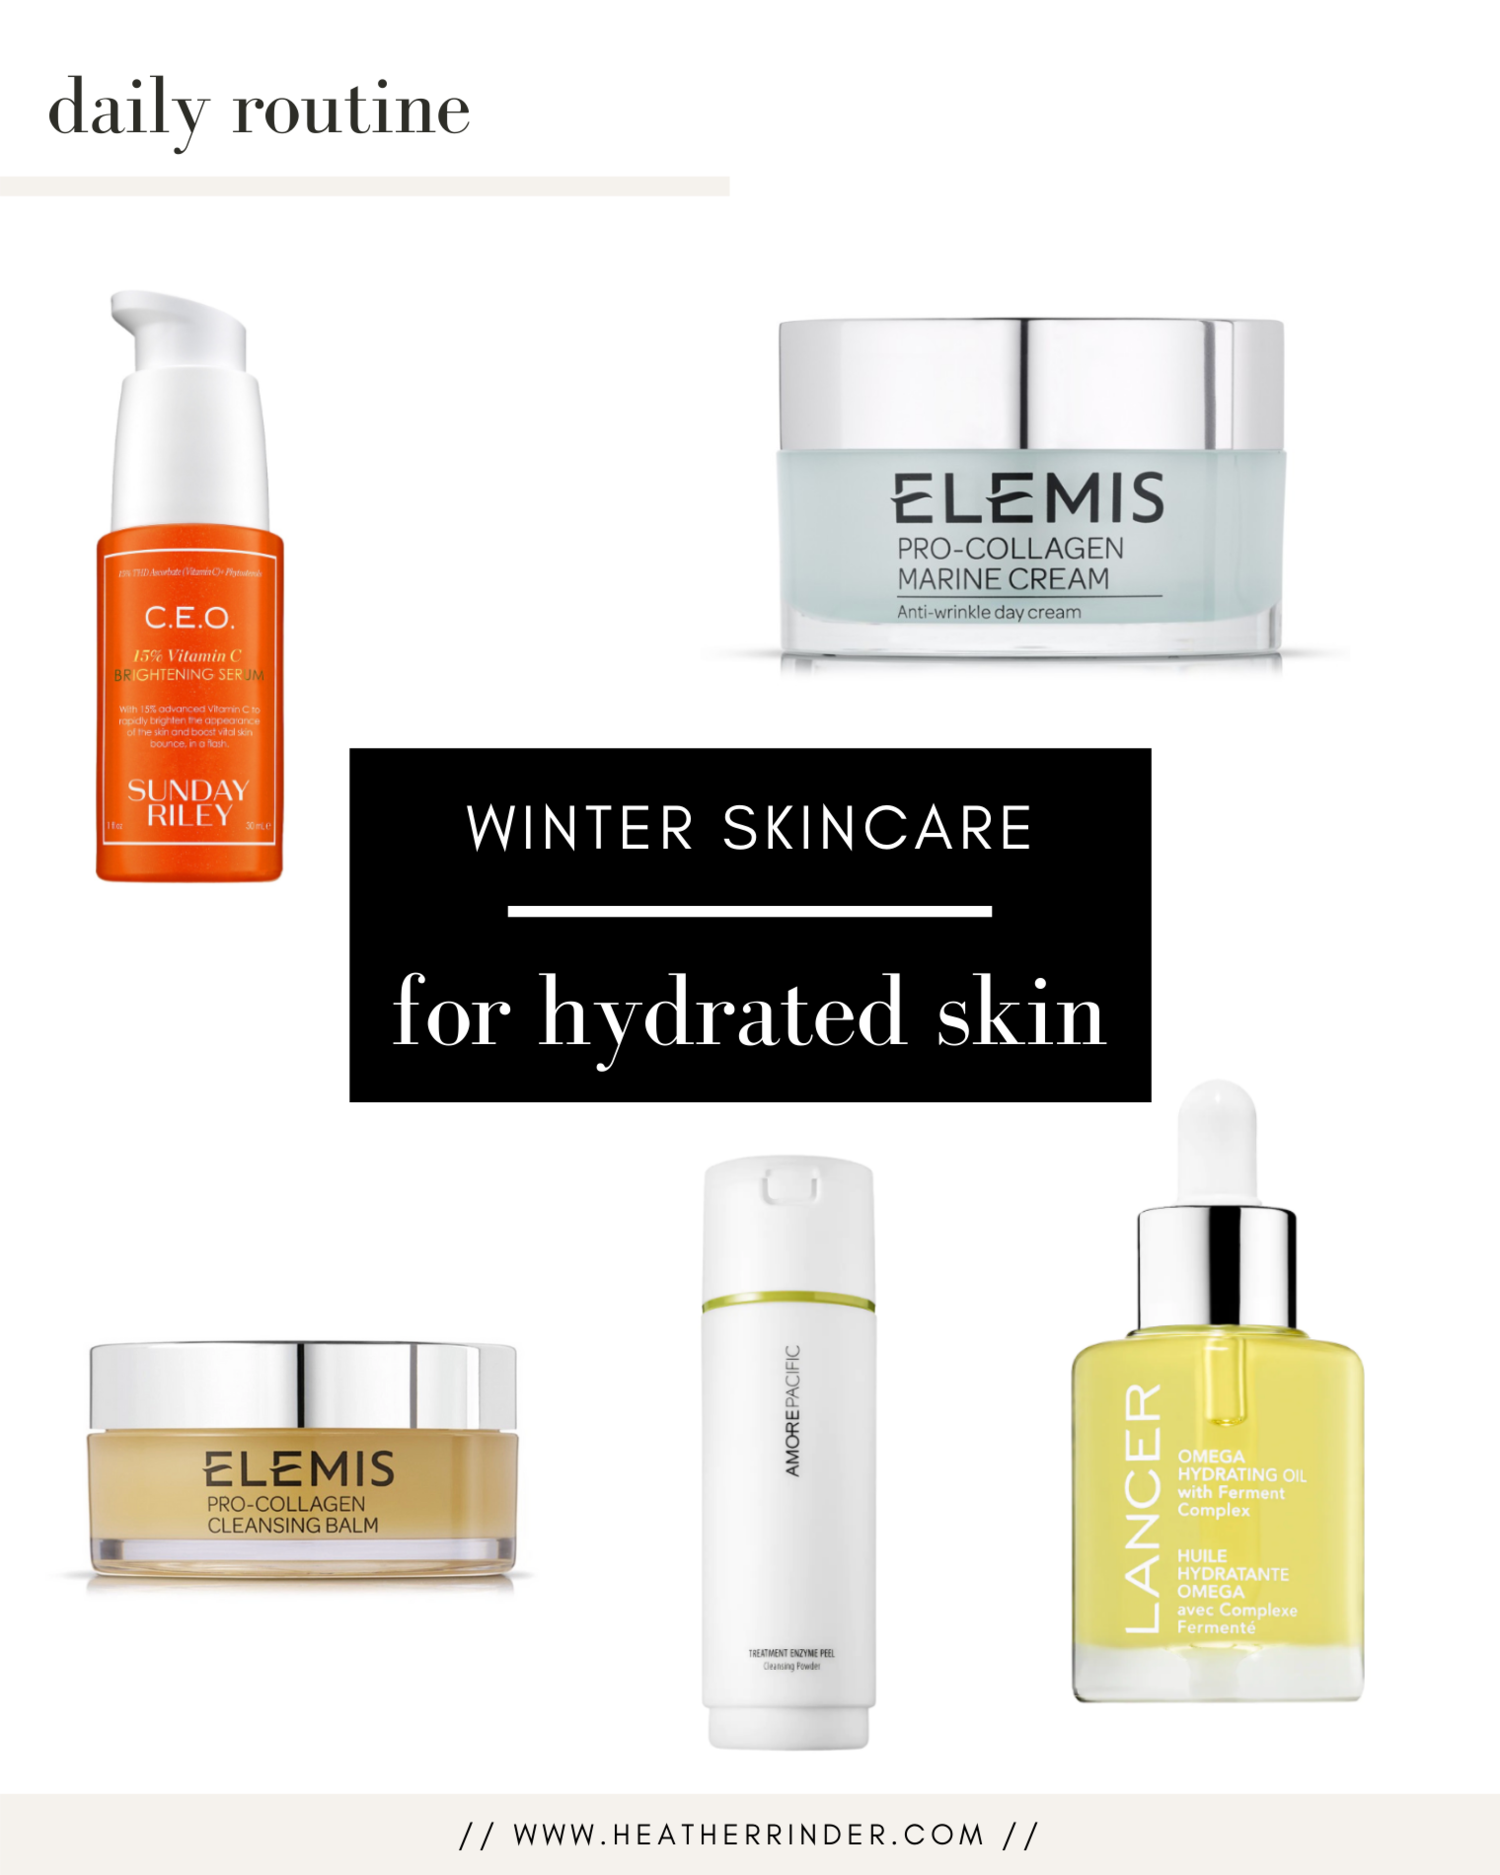 Winter Skincare Routine: 12 Steps and Products for Hydrated Skin